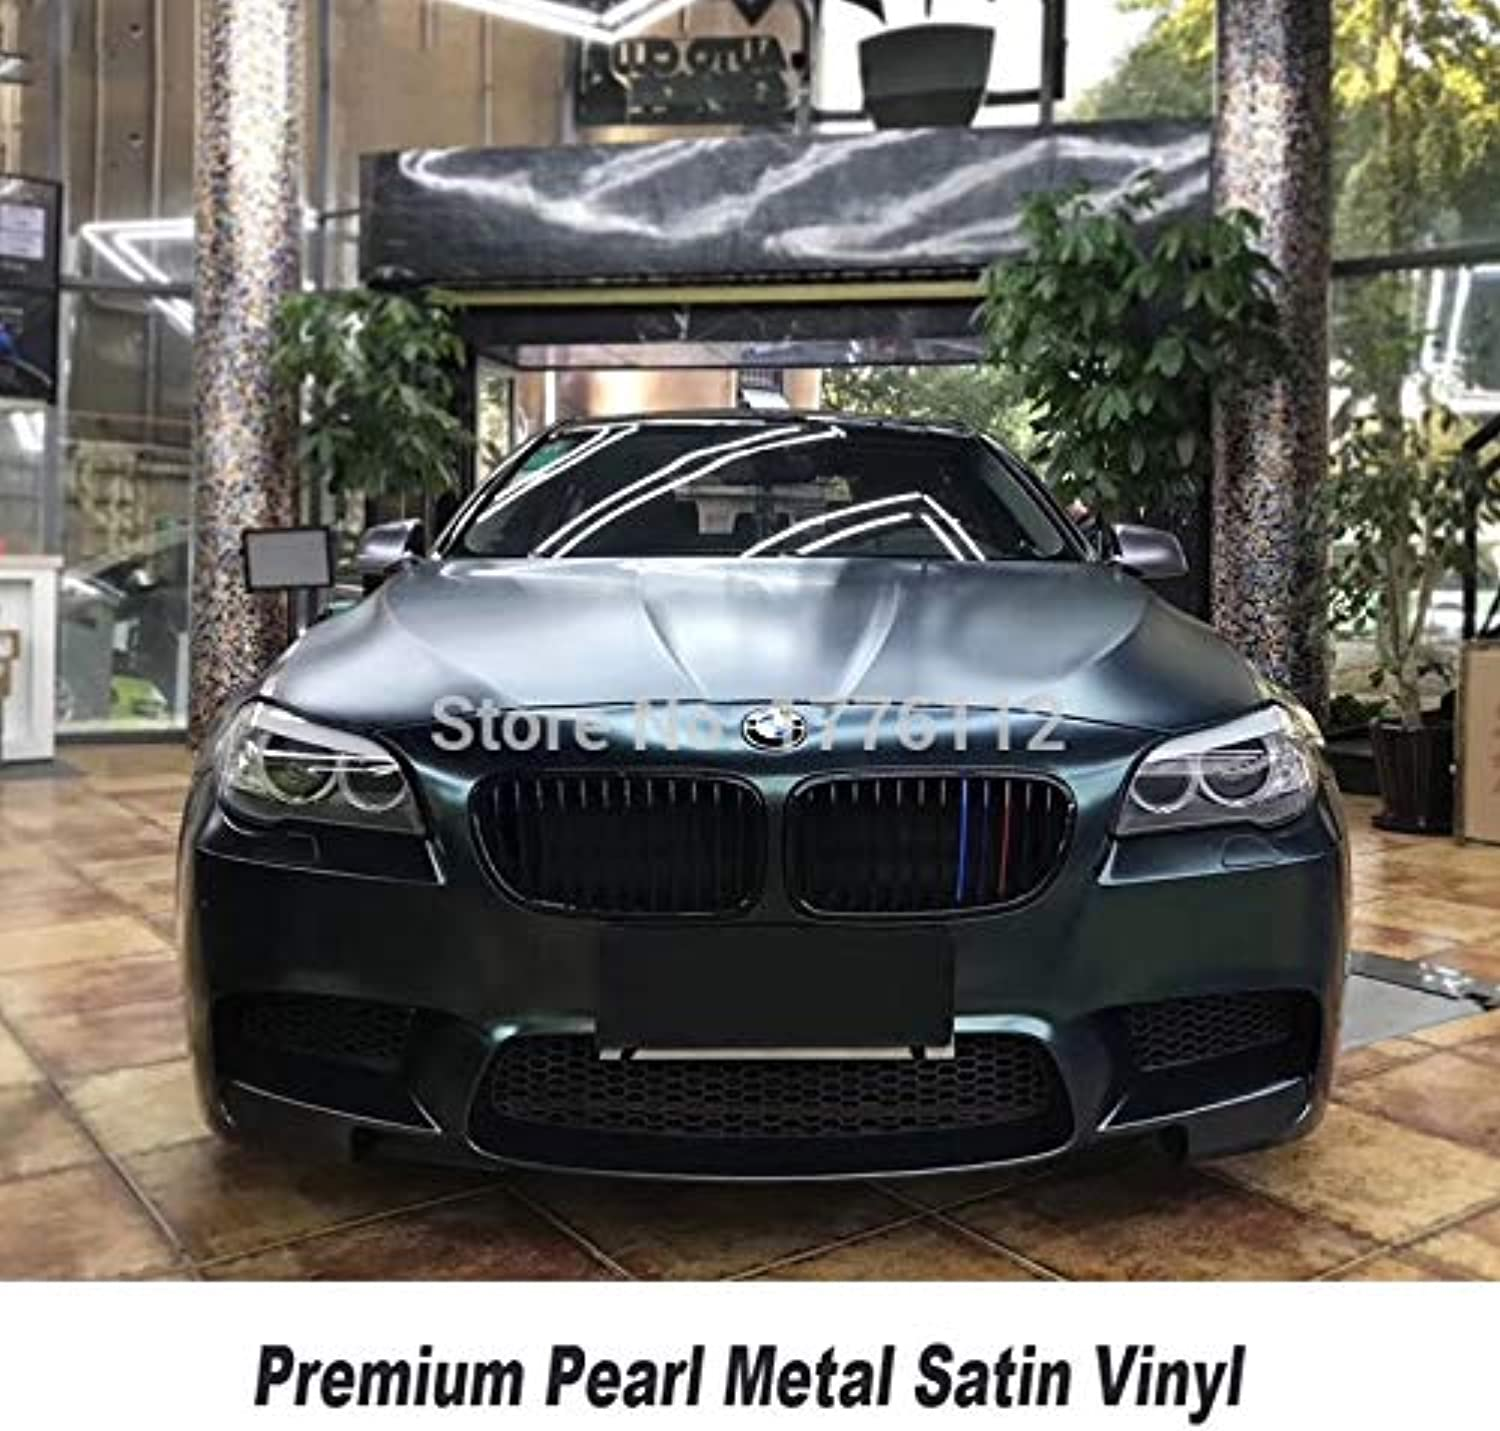 Highest Quality Forest Green Car Wrapping Film with Air Bubble Free Matte Car Wrap Styling Covering with Best Glue(Size  1.52m X 5m)